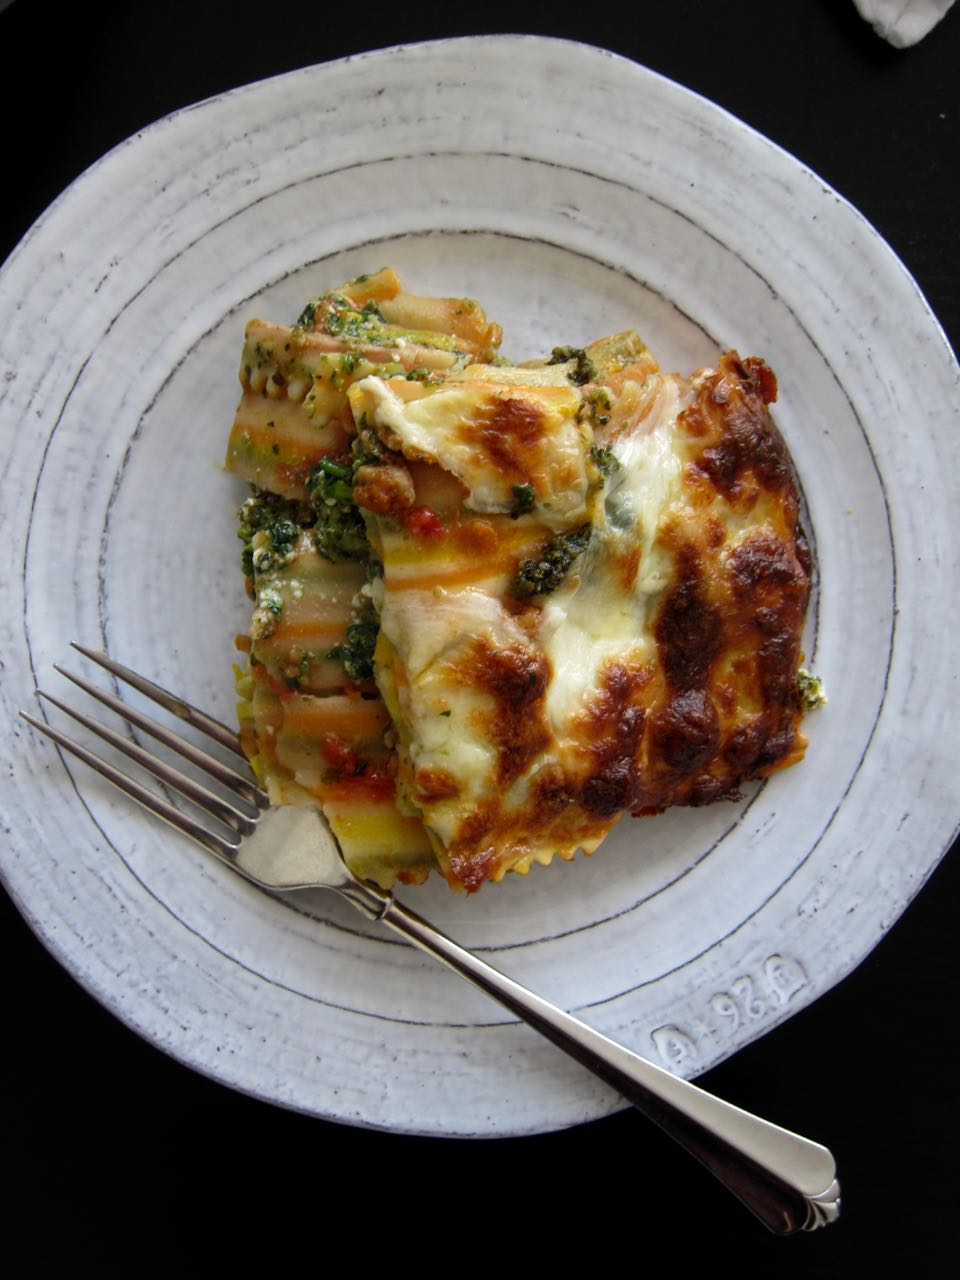 slice of veggie & chicken lasagna